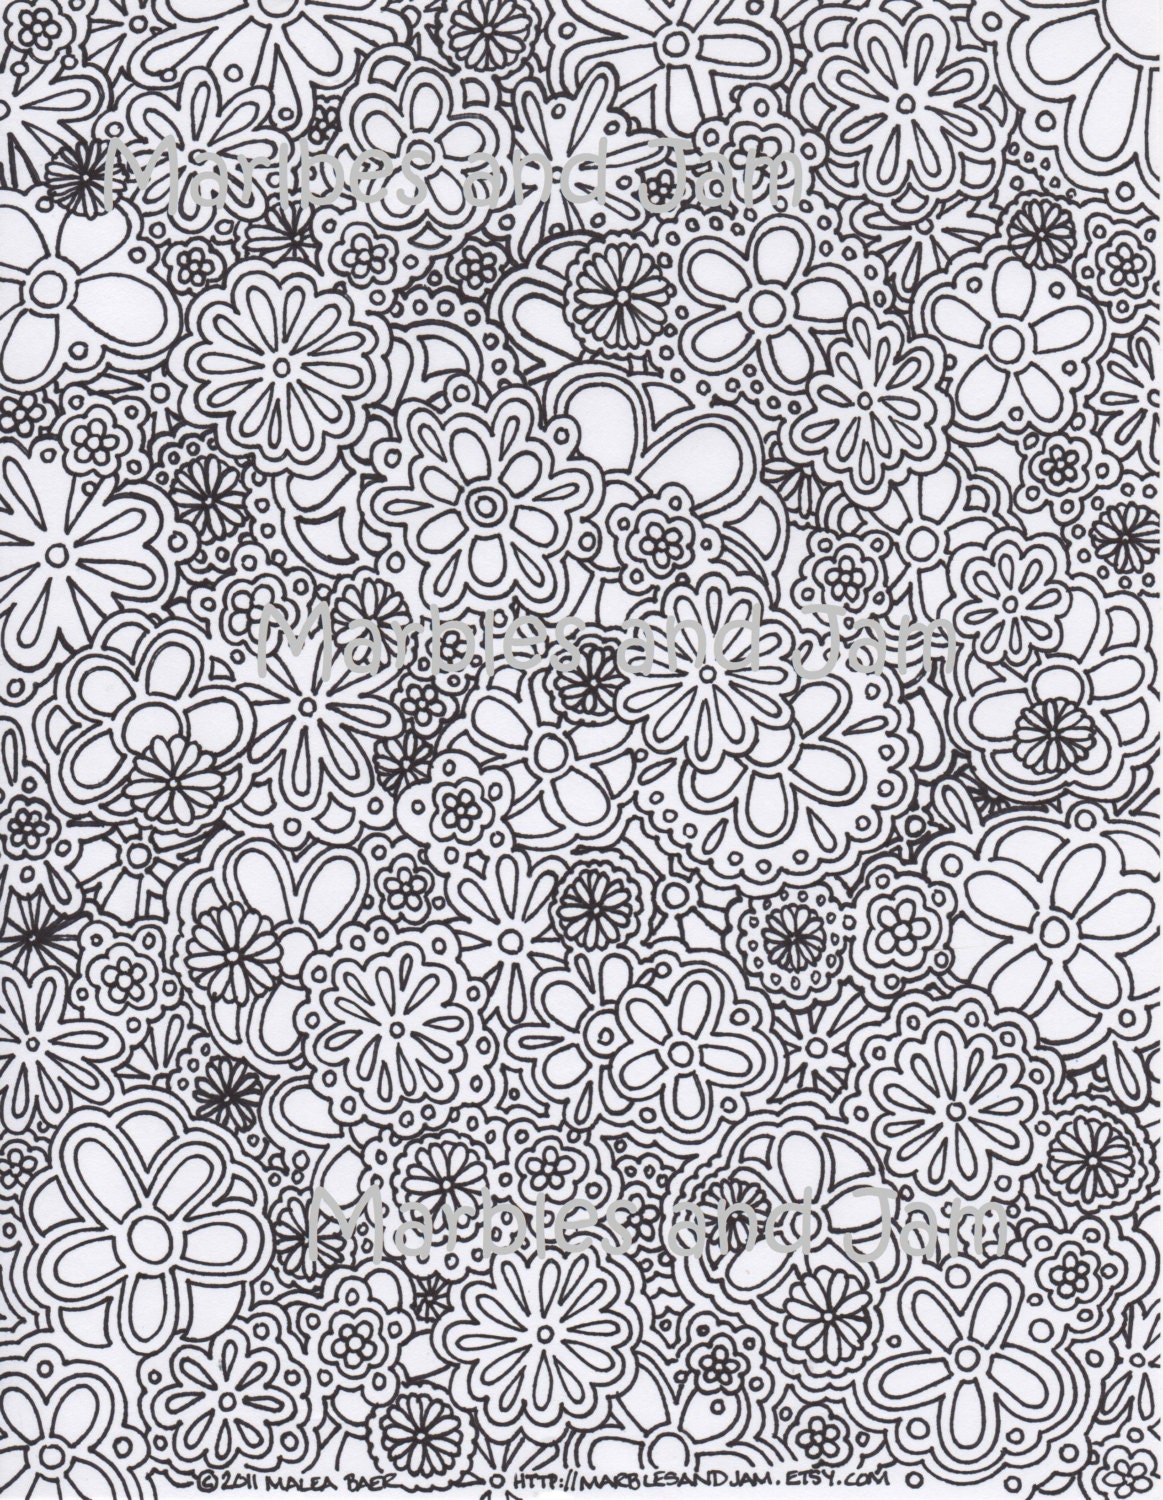 Flowers abstract adult printable coloring page